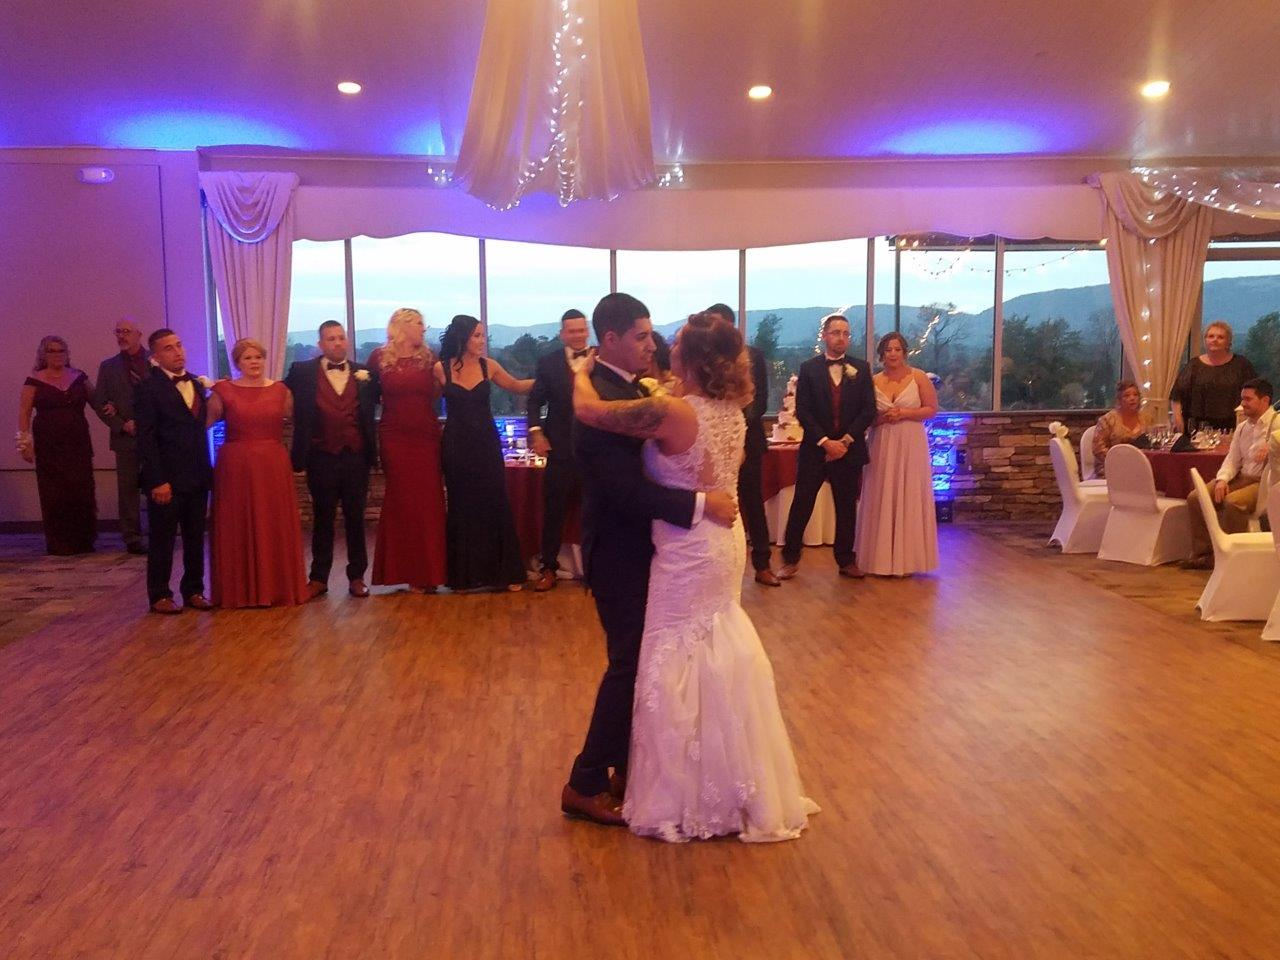 Bride & Groom's first dance at Woodstone Country Club in Danielsville, Pa with Appalachian Entertainment